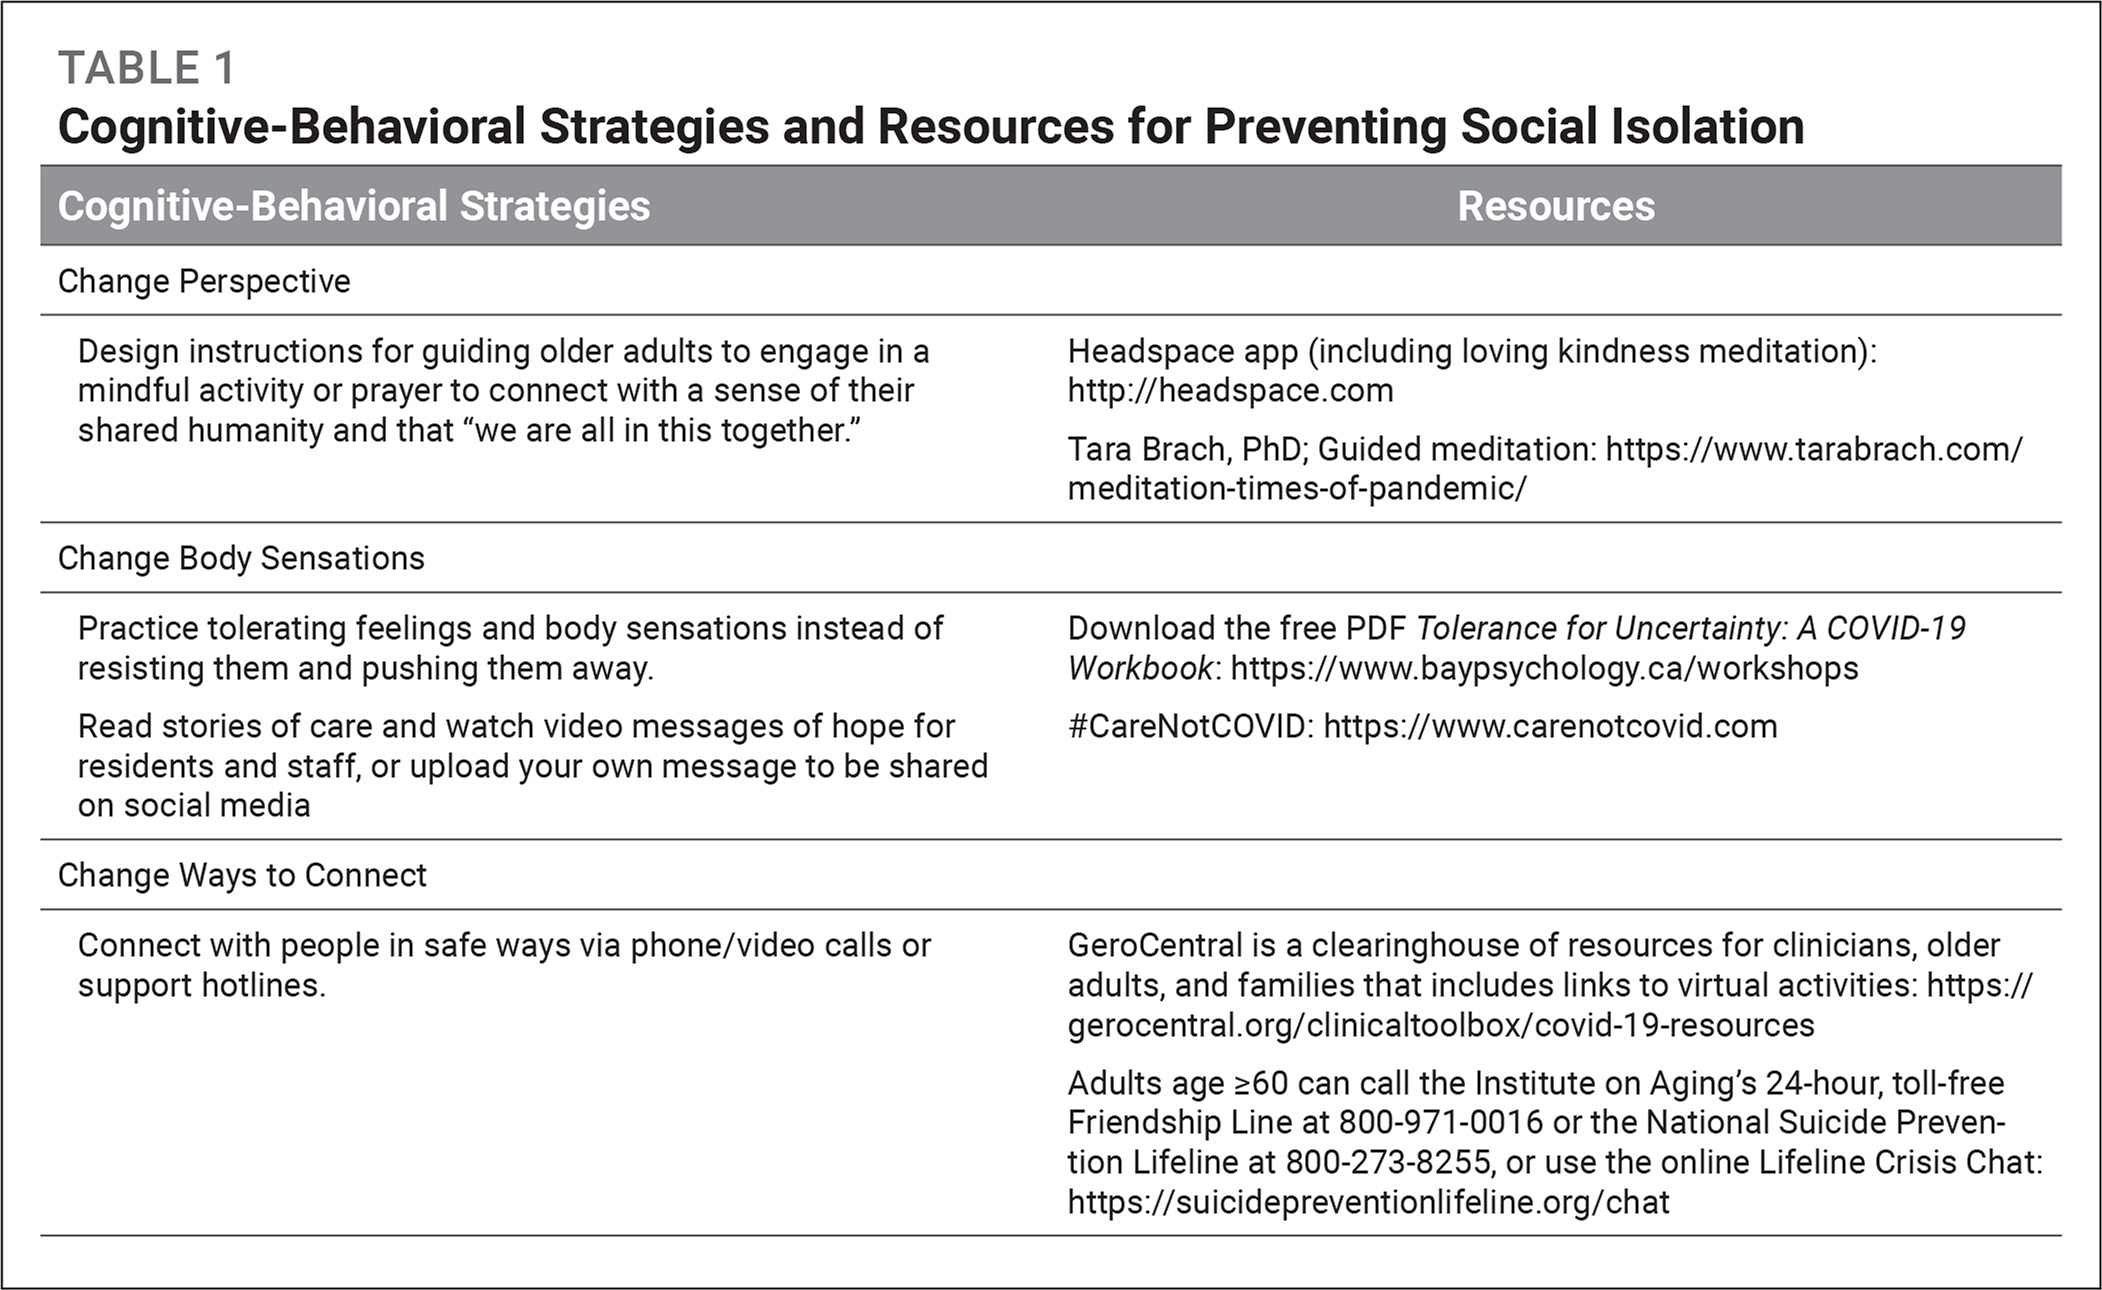 Cognitive-Behavioral Strategies and Resources for Preventing Social Isolation